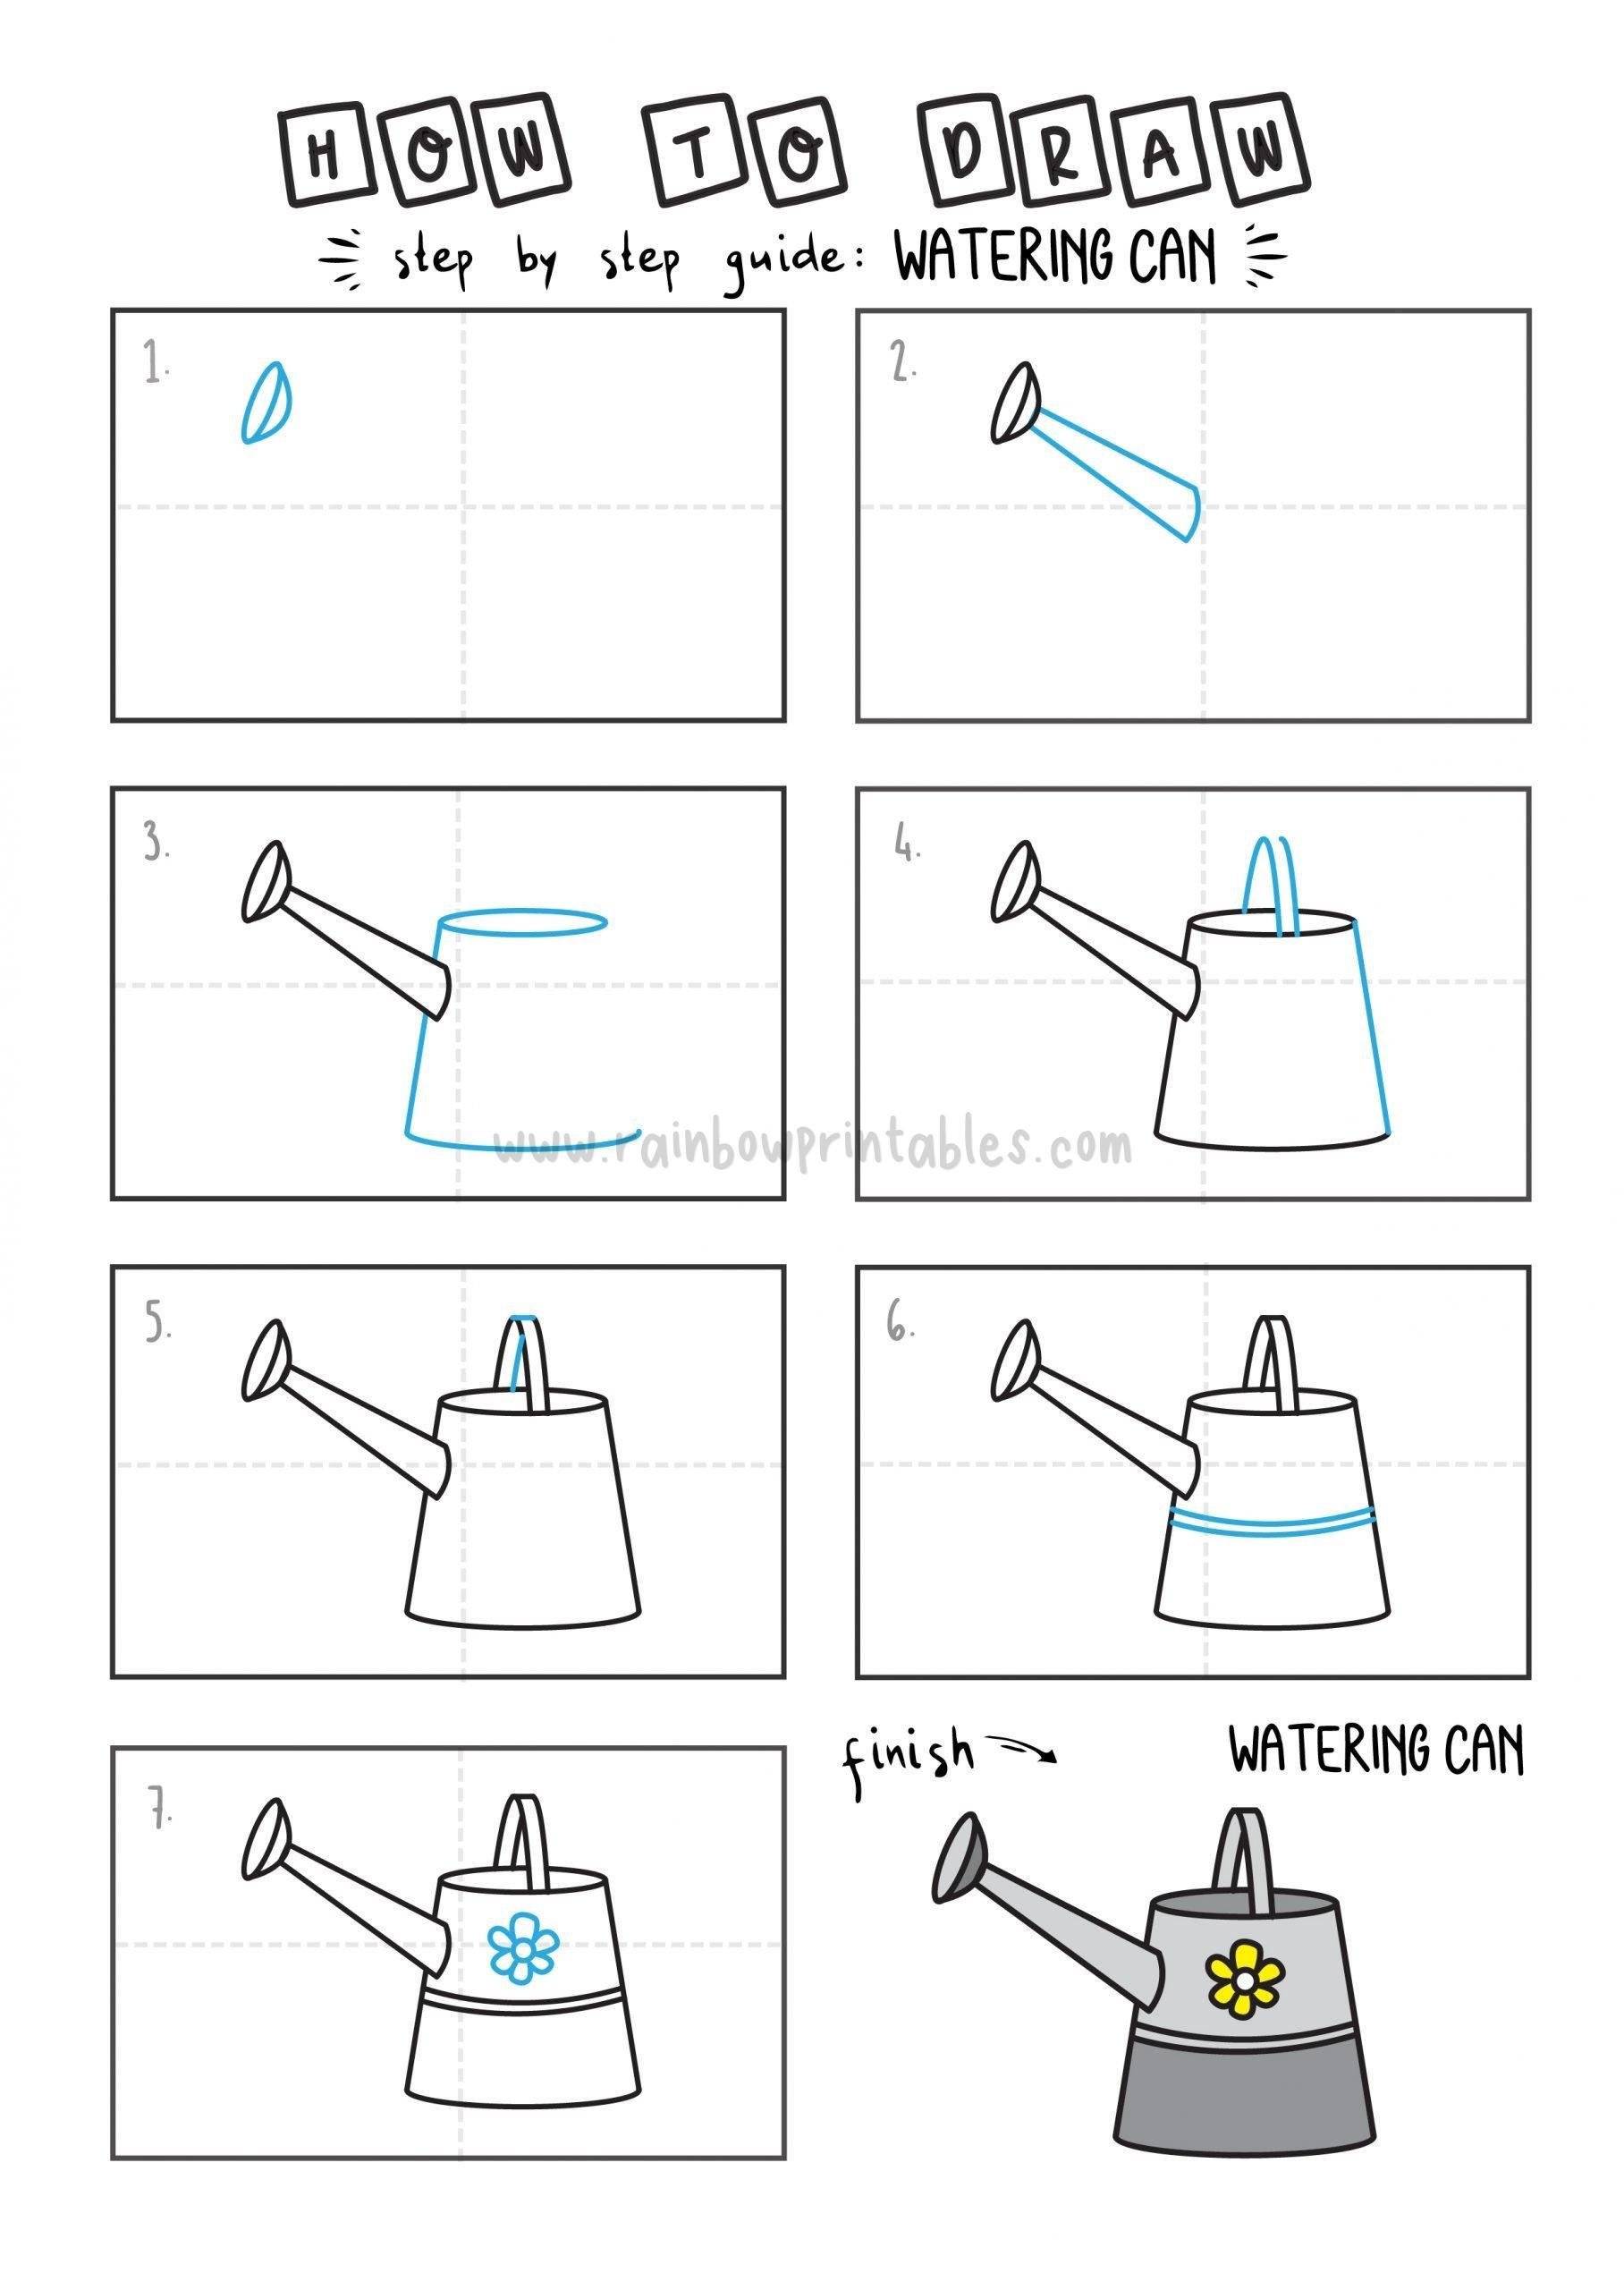 How To Draw Tutorials For Kids Watering Can Step by step for kids easy simple guide